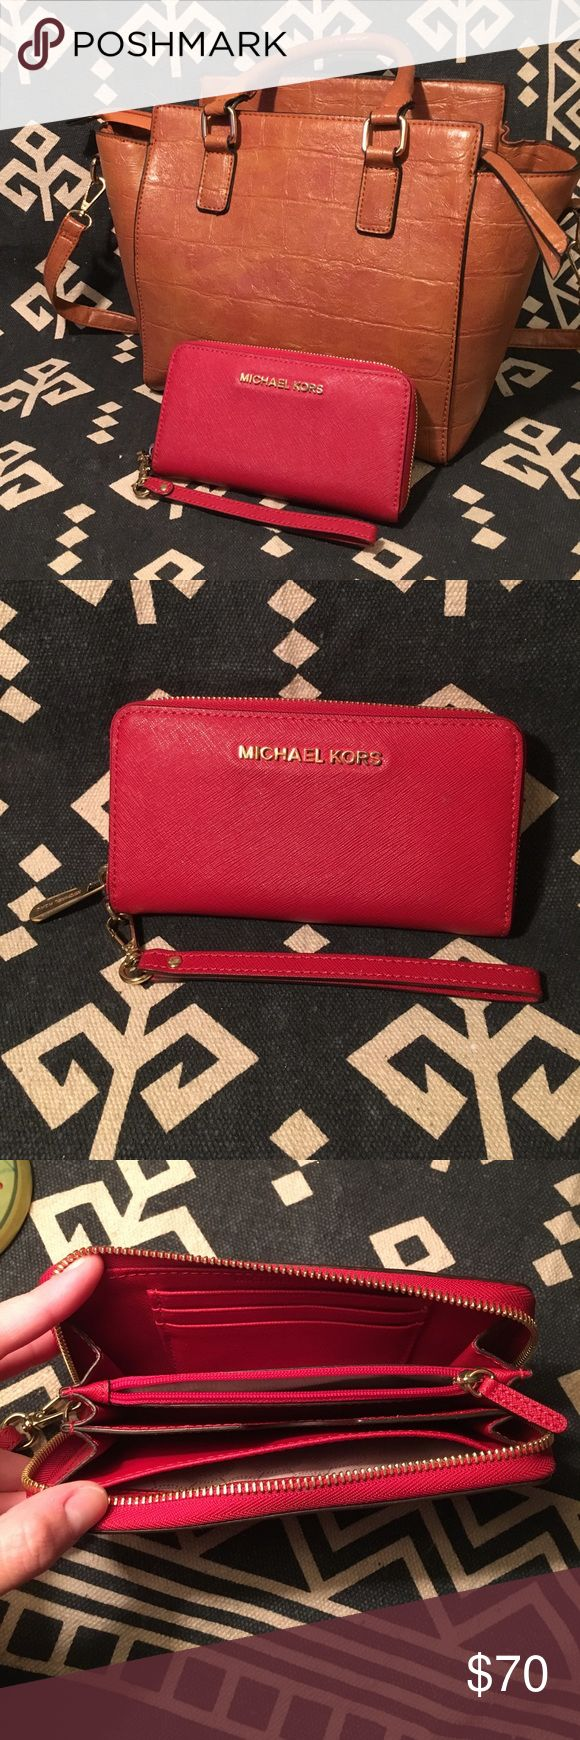 Michael Kors Jet Set Continental Wallet Michael Kors Jet Set Continental wallet in Burnt Red. Minor flaws showed- small stain on inside zippered pocket and scratch marks on the zipper. Gold hardware. Michael Kors Bags Wallets